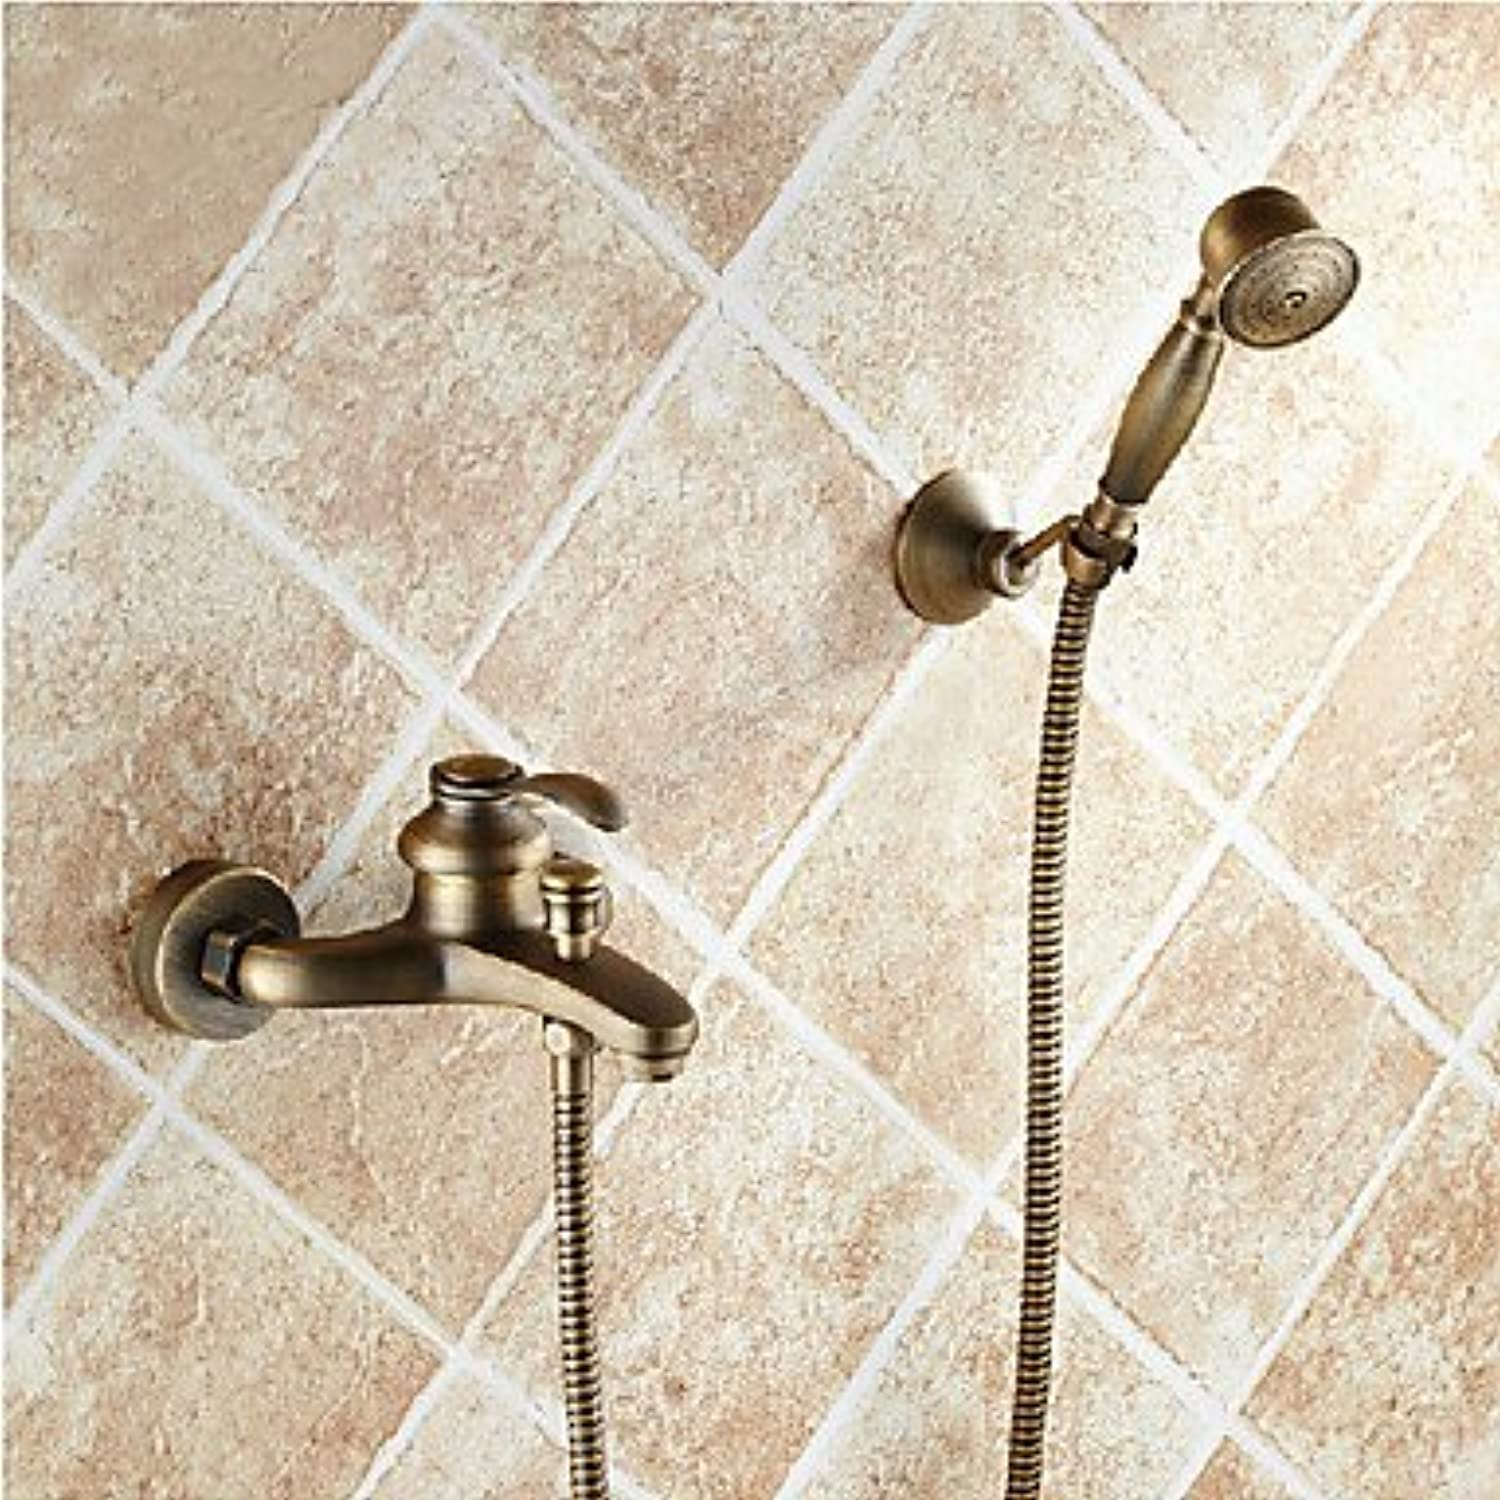 GFFXIXI Antique Tub And Shower Handshower Included Ceramic Valve Two Holes Single Handle Two Holes Antique Brass, Shower Faucet Bathtub Faucet